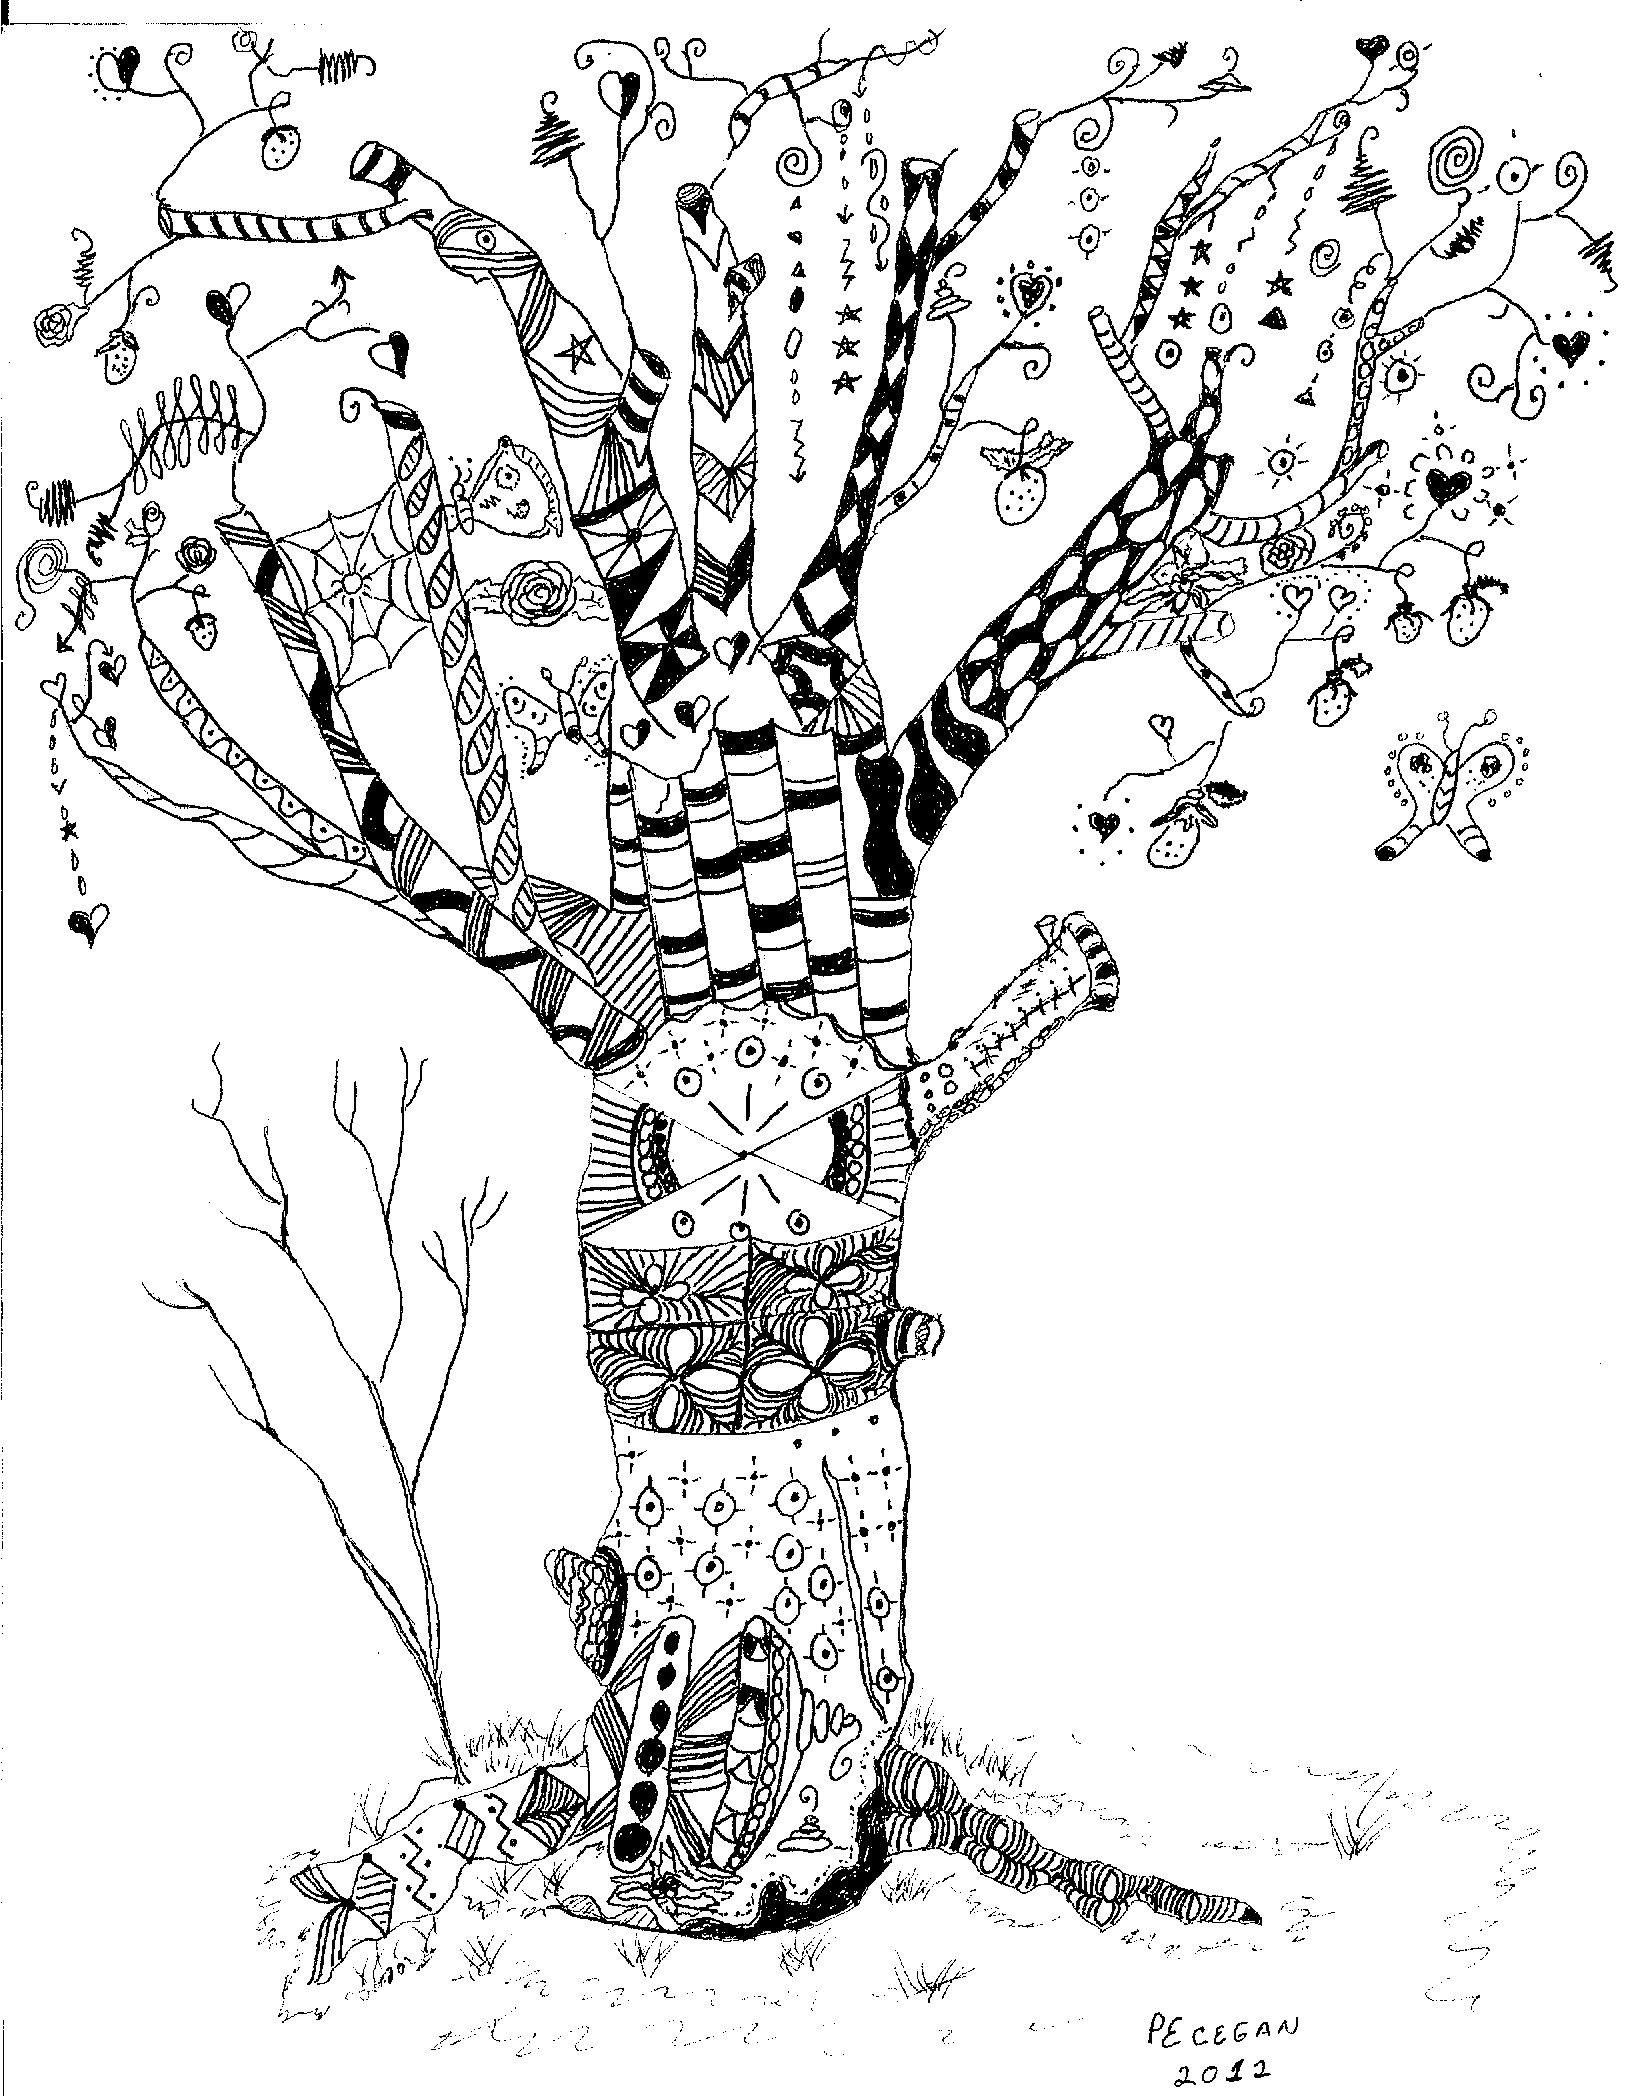 japaese trees coloring pages - photo#29